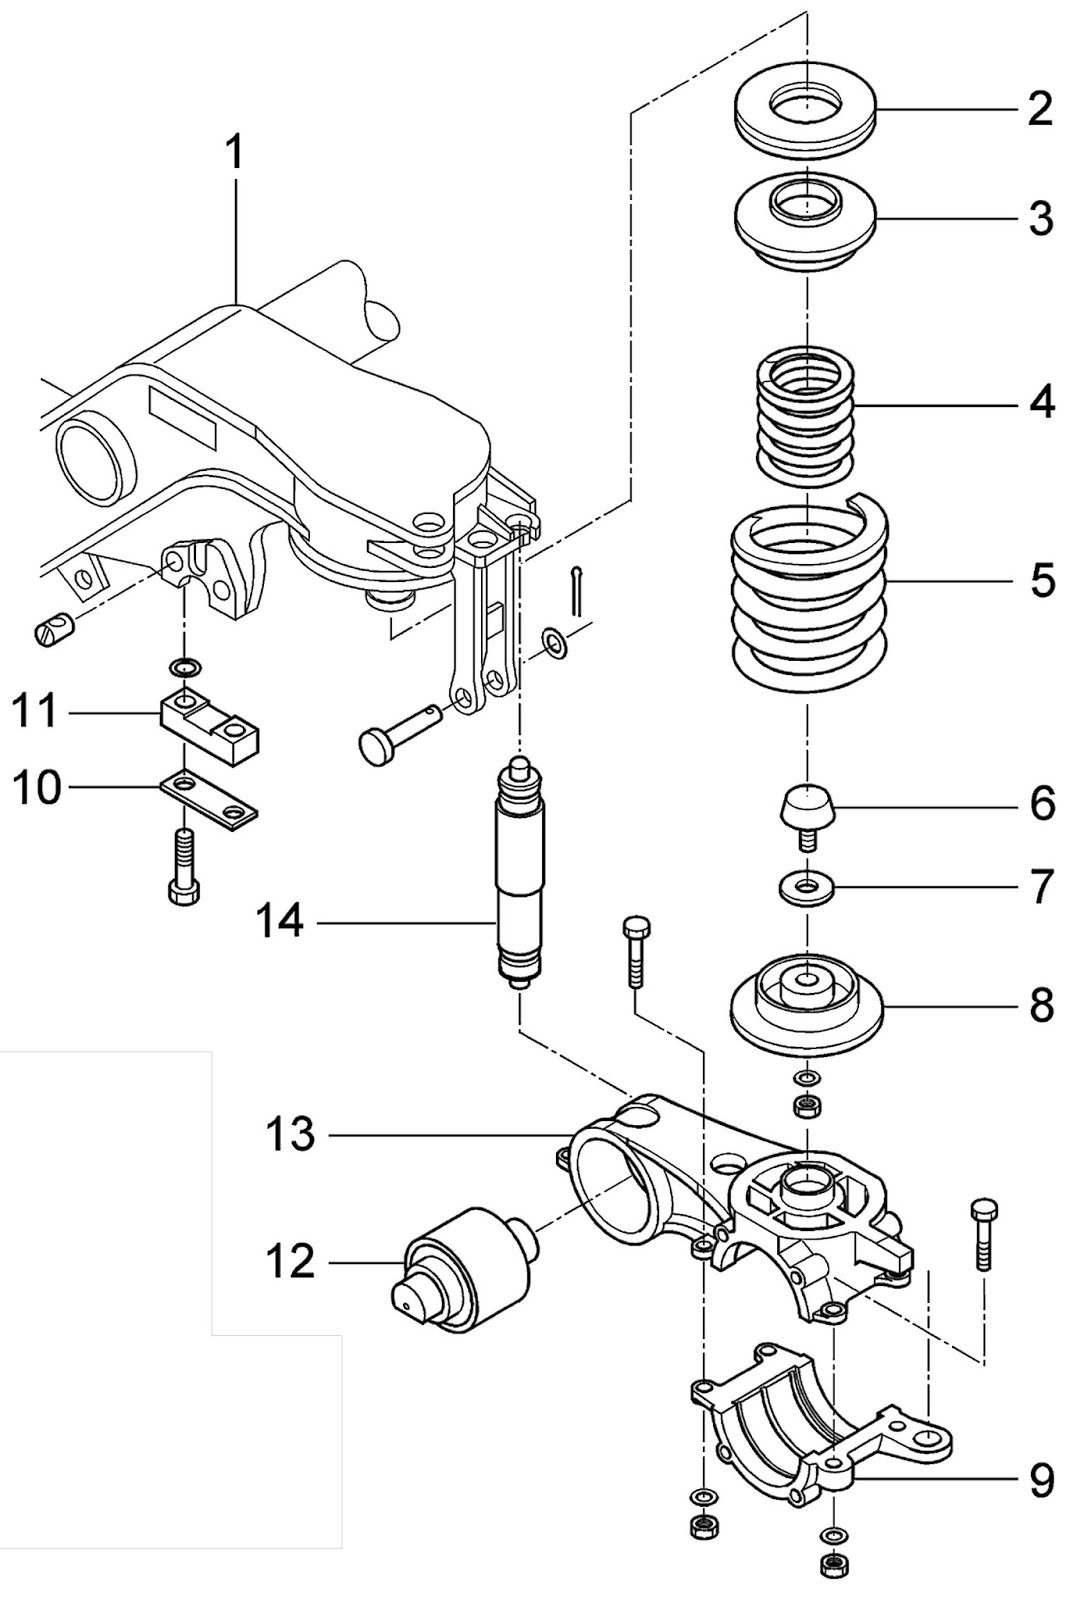 hight resolution of primary suspension is implemented by two units of two steel coil springs internal 4 and external 5 laid out on the control arm upper part 13 by a